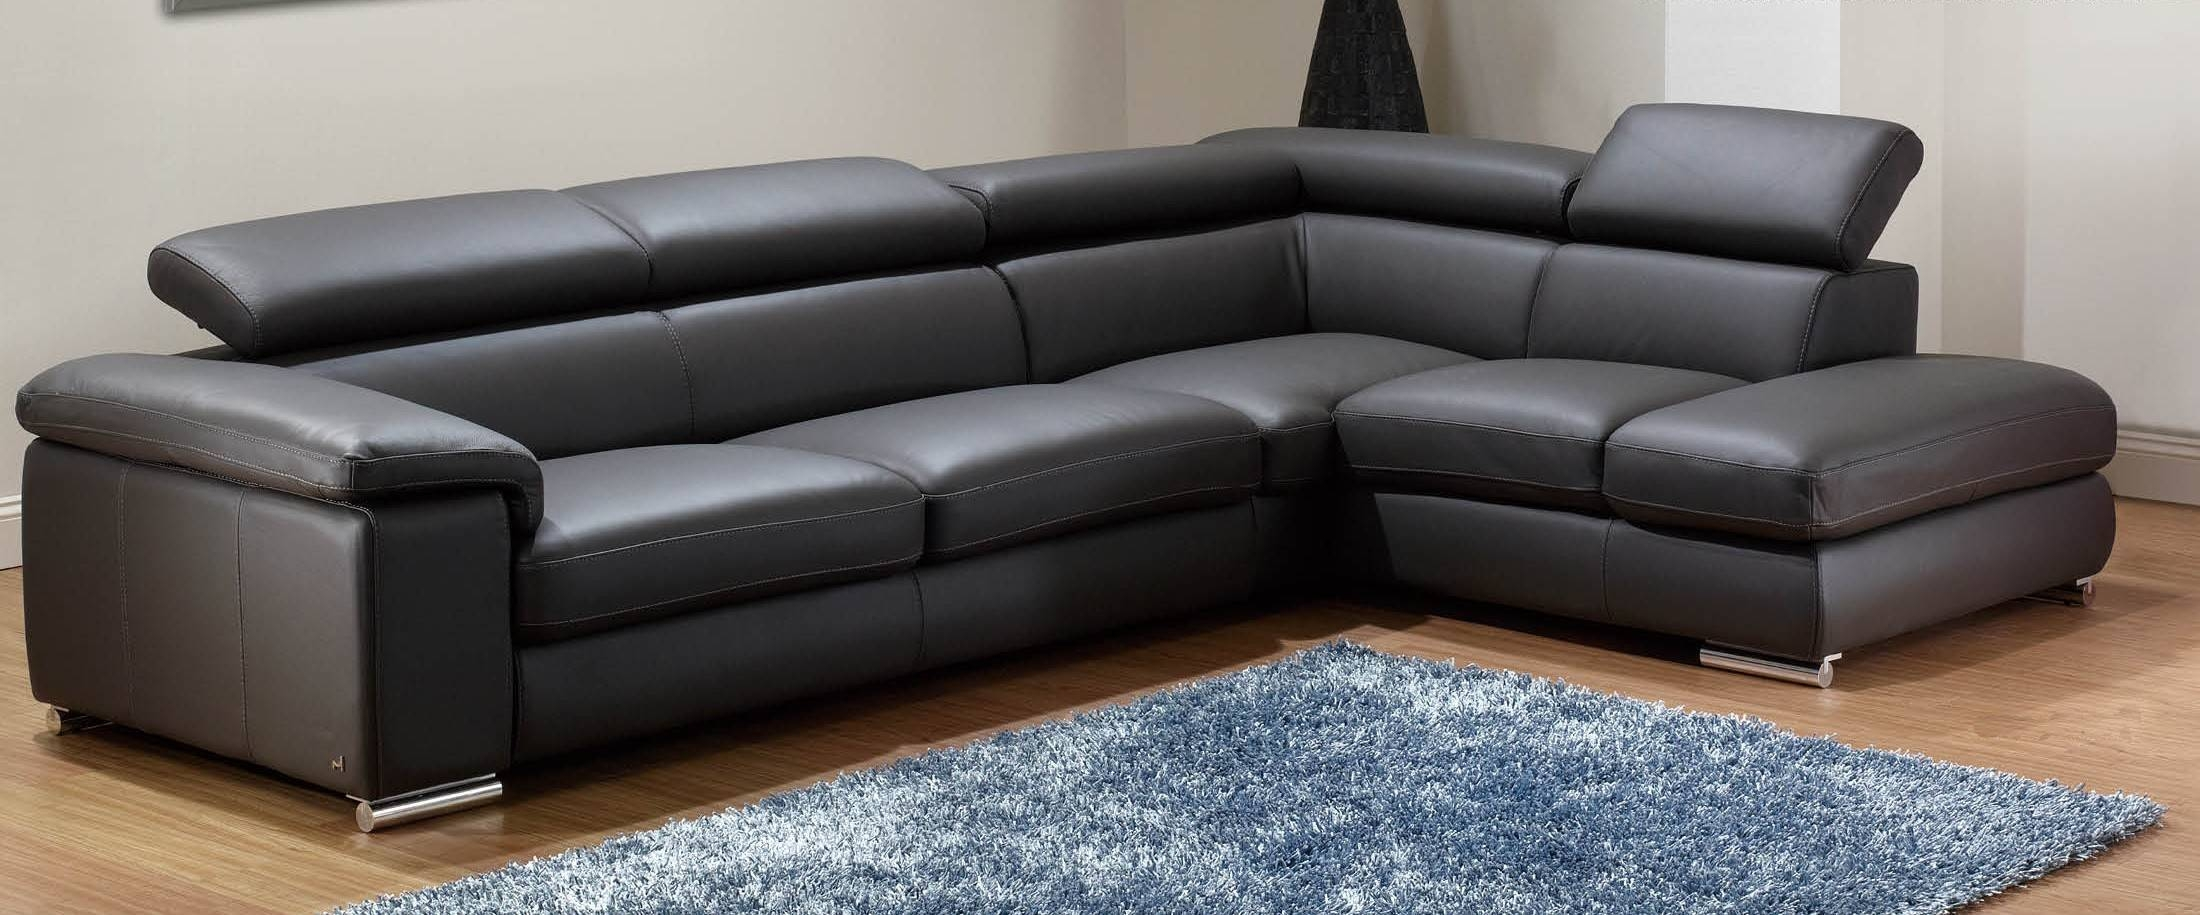 Sofas Center : Small Leathernal Sofa With Recliner Torontosmall Pertaining To Sectional Sofas For Small Spaces With Recliners (View 29 of 30)